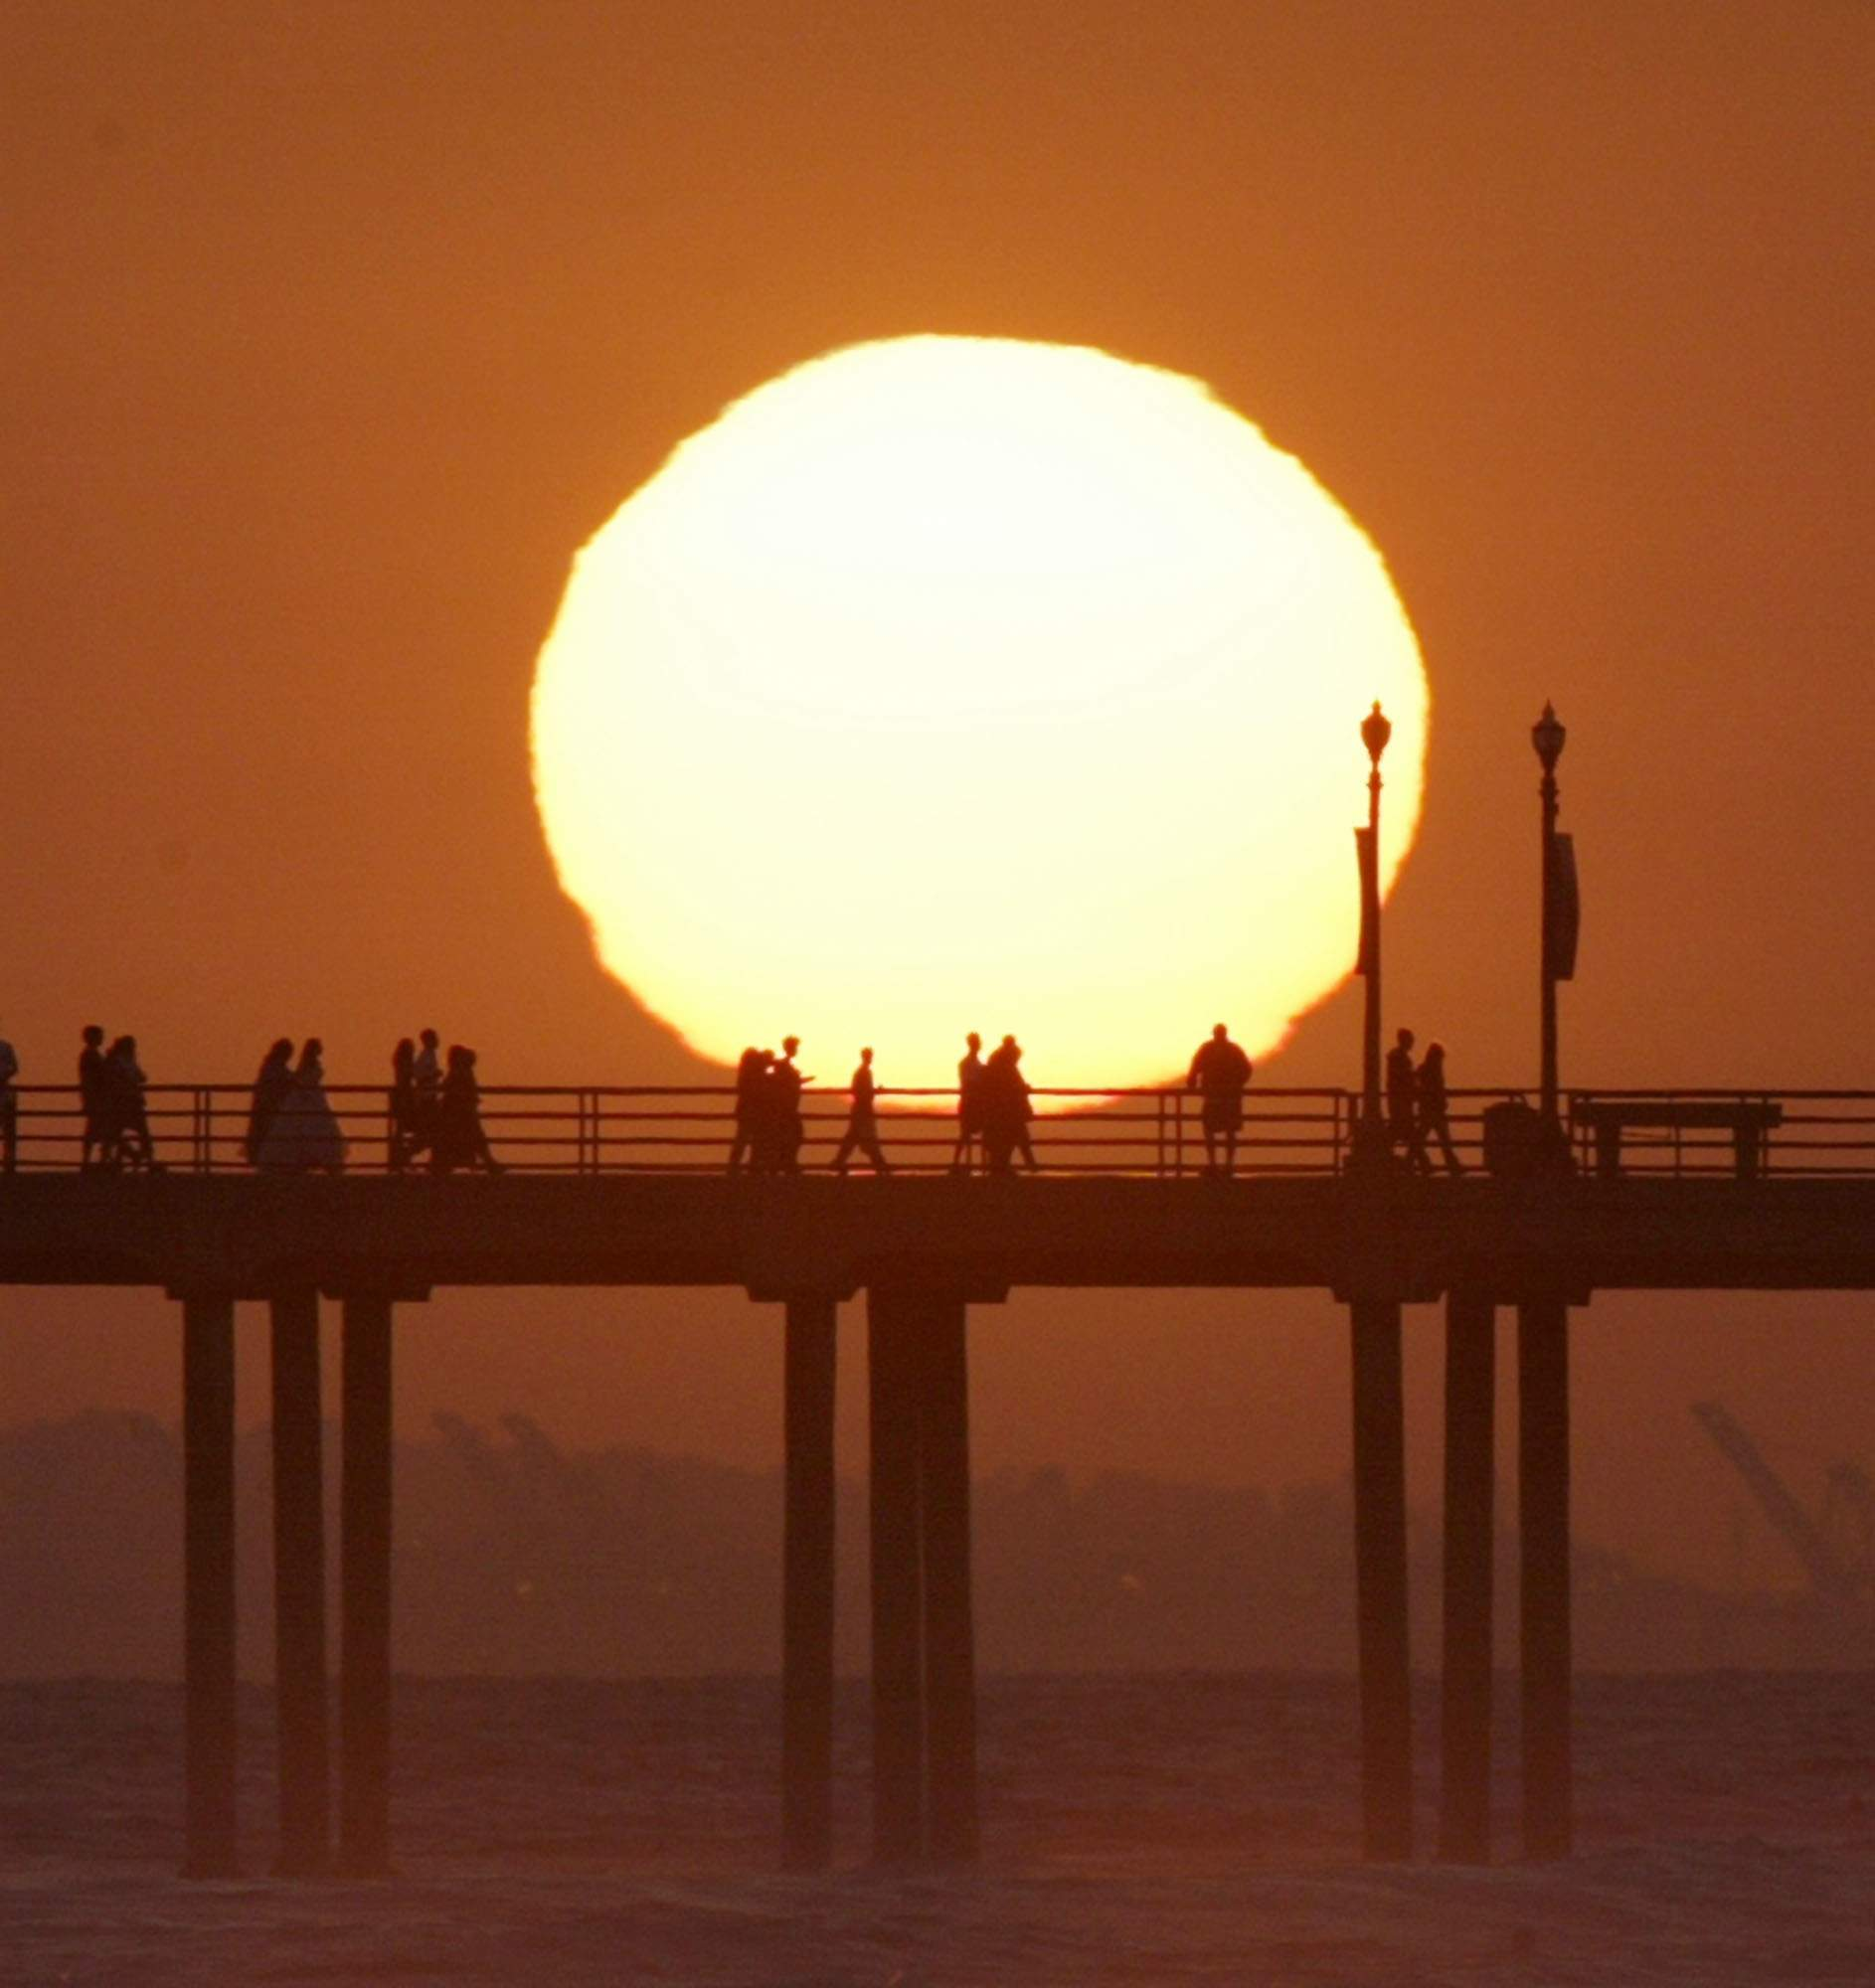 In this Saturday, May 29, 2004, file photo, people gather on a pier in Huntington Beach, Calif., as the sun sets. NICK UT/THE ASSOCIATED PRESS